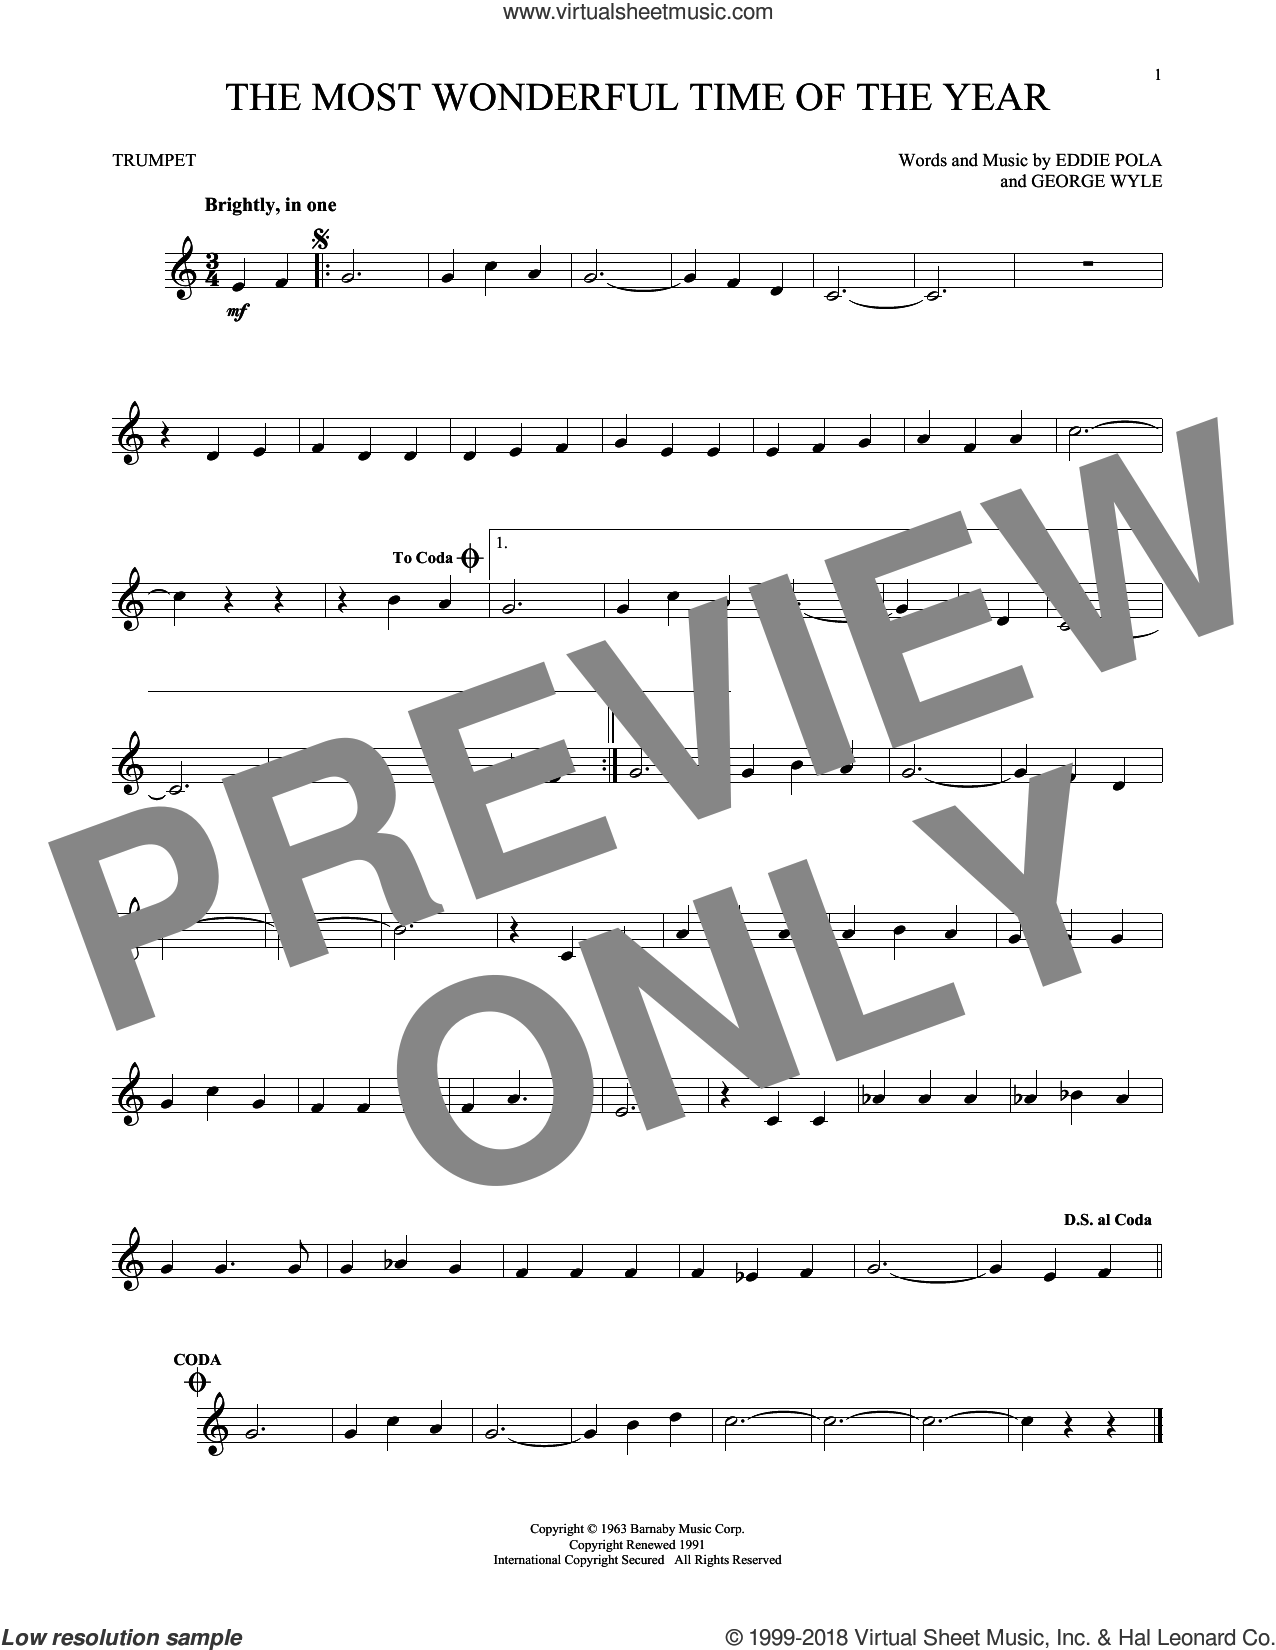 The Most Wonderful Time Of The Year sheet music for trumpet solo by George Wyle, Andy Williams, Eddie Pola and George Wyle & Eddie Pola, intermediate